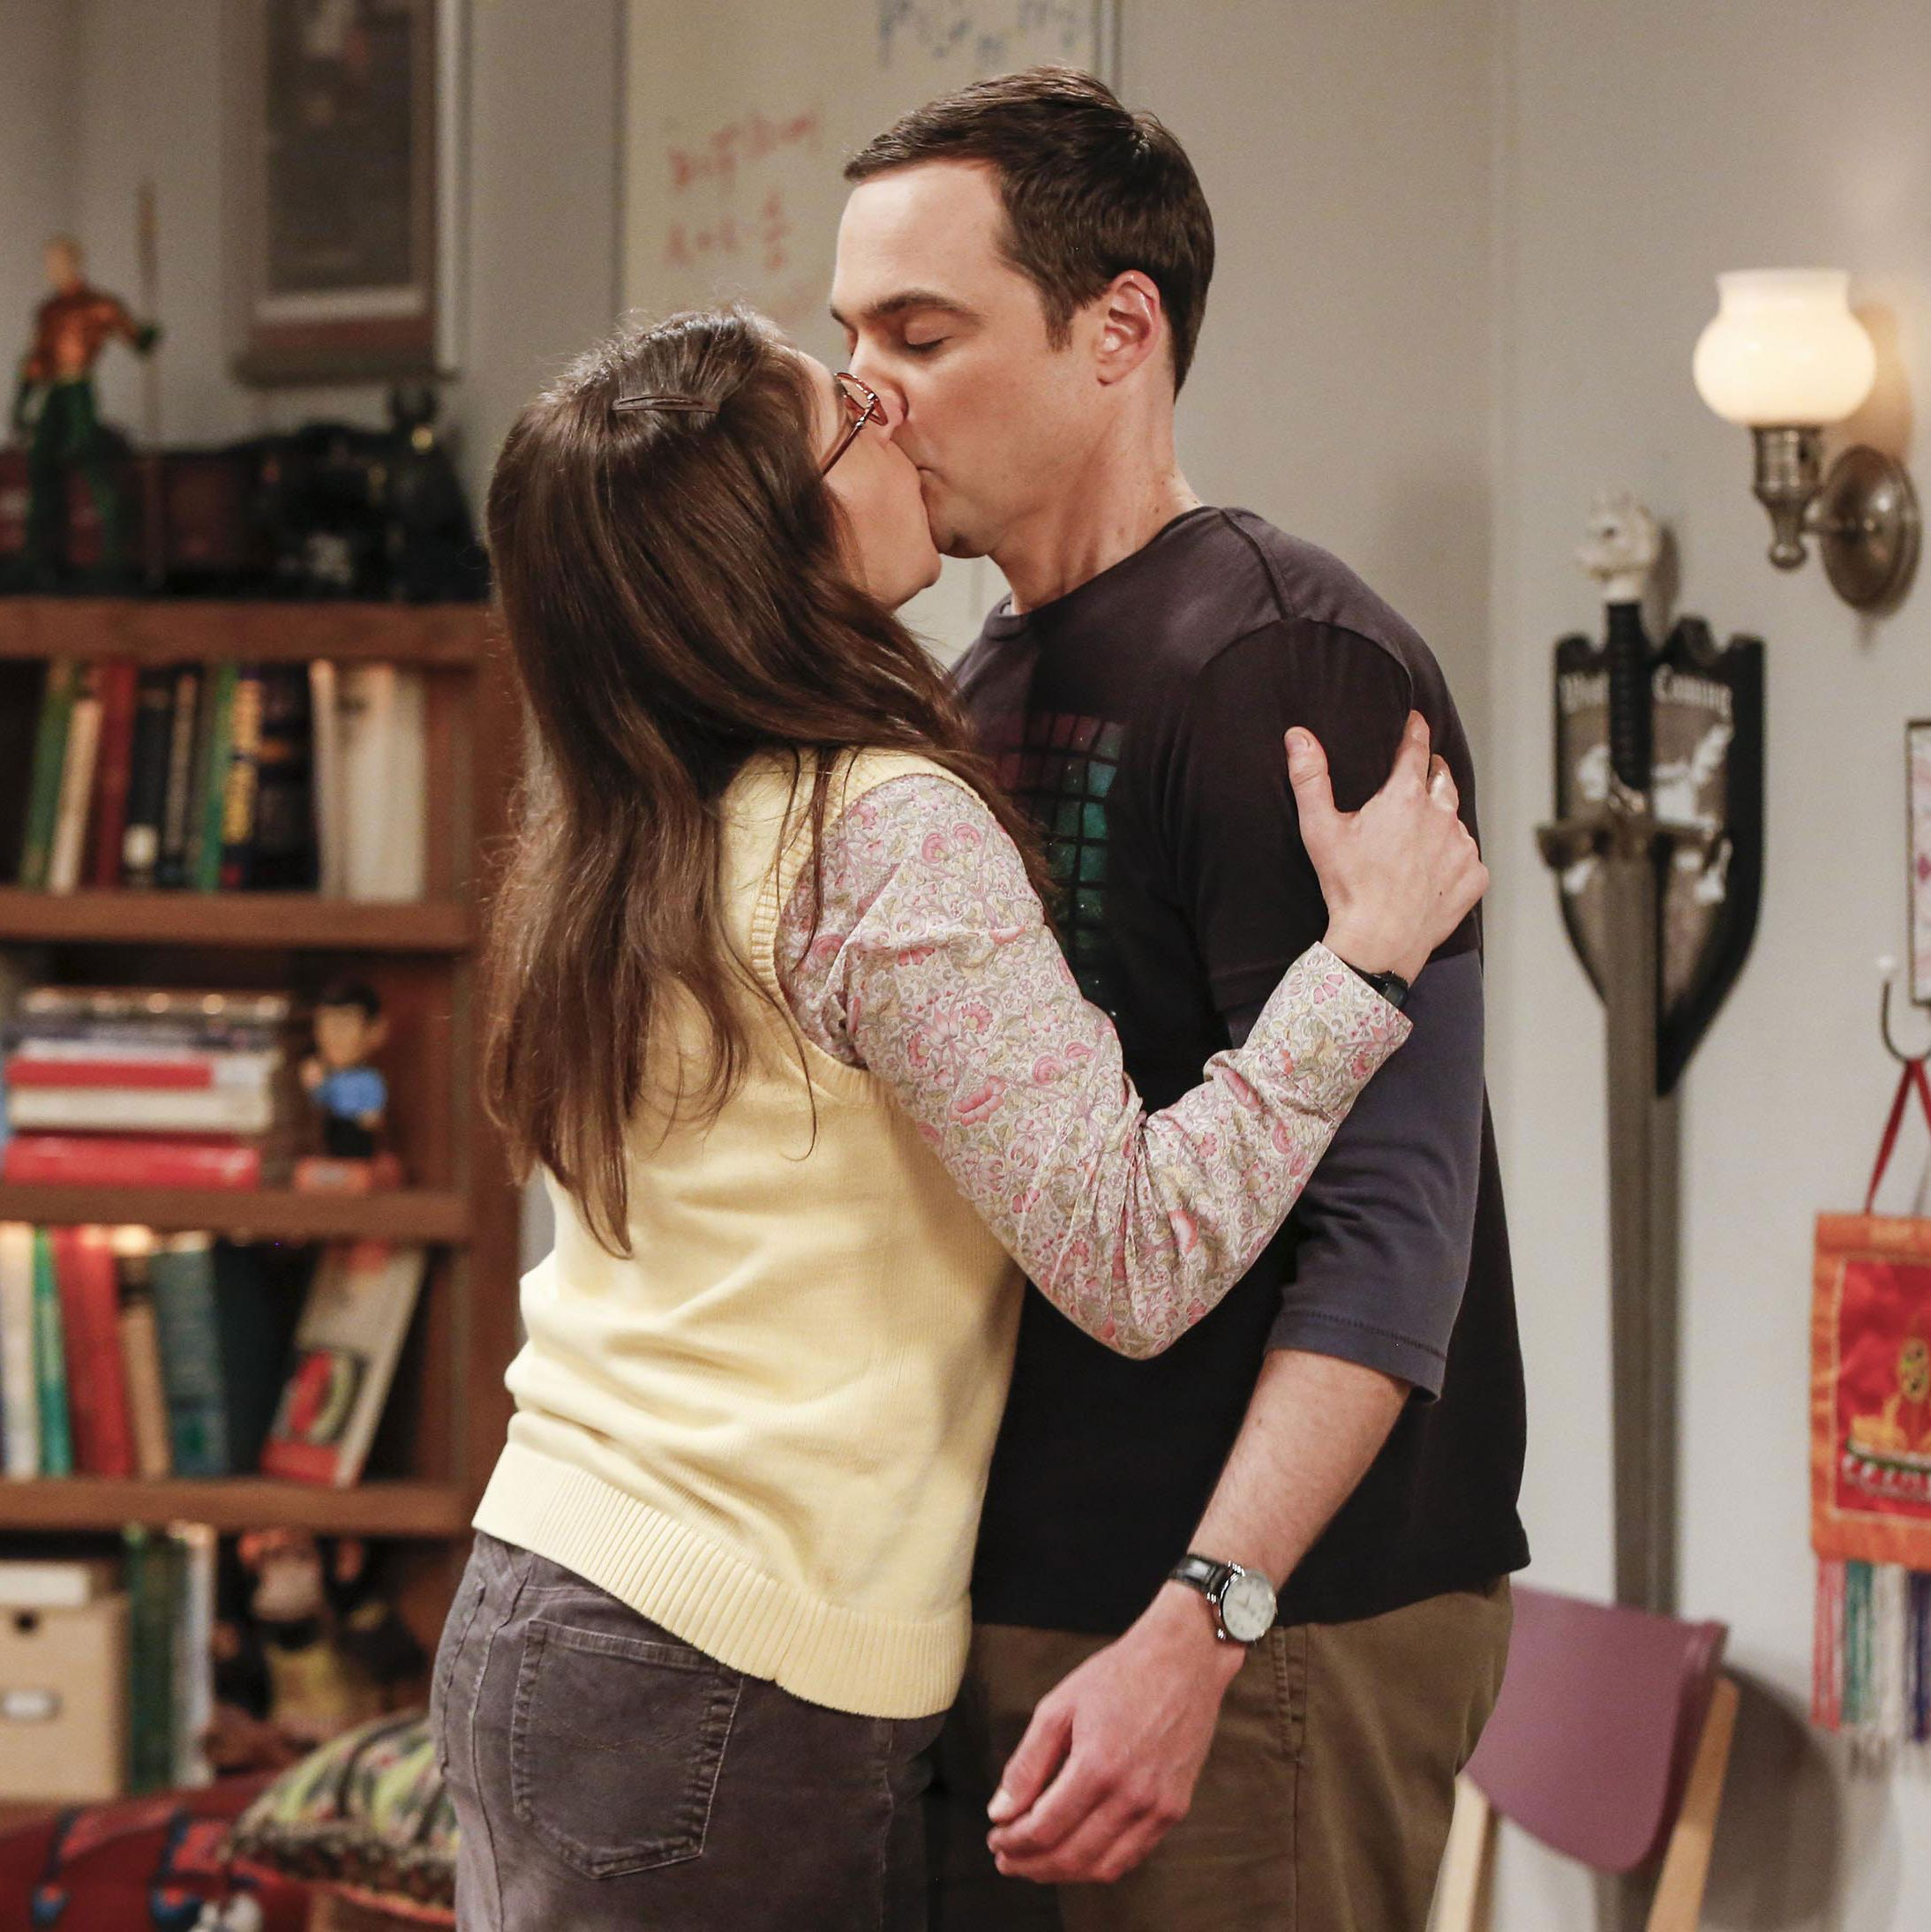 Big Bang Theory star appears to reveal they had sex in their dressing room